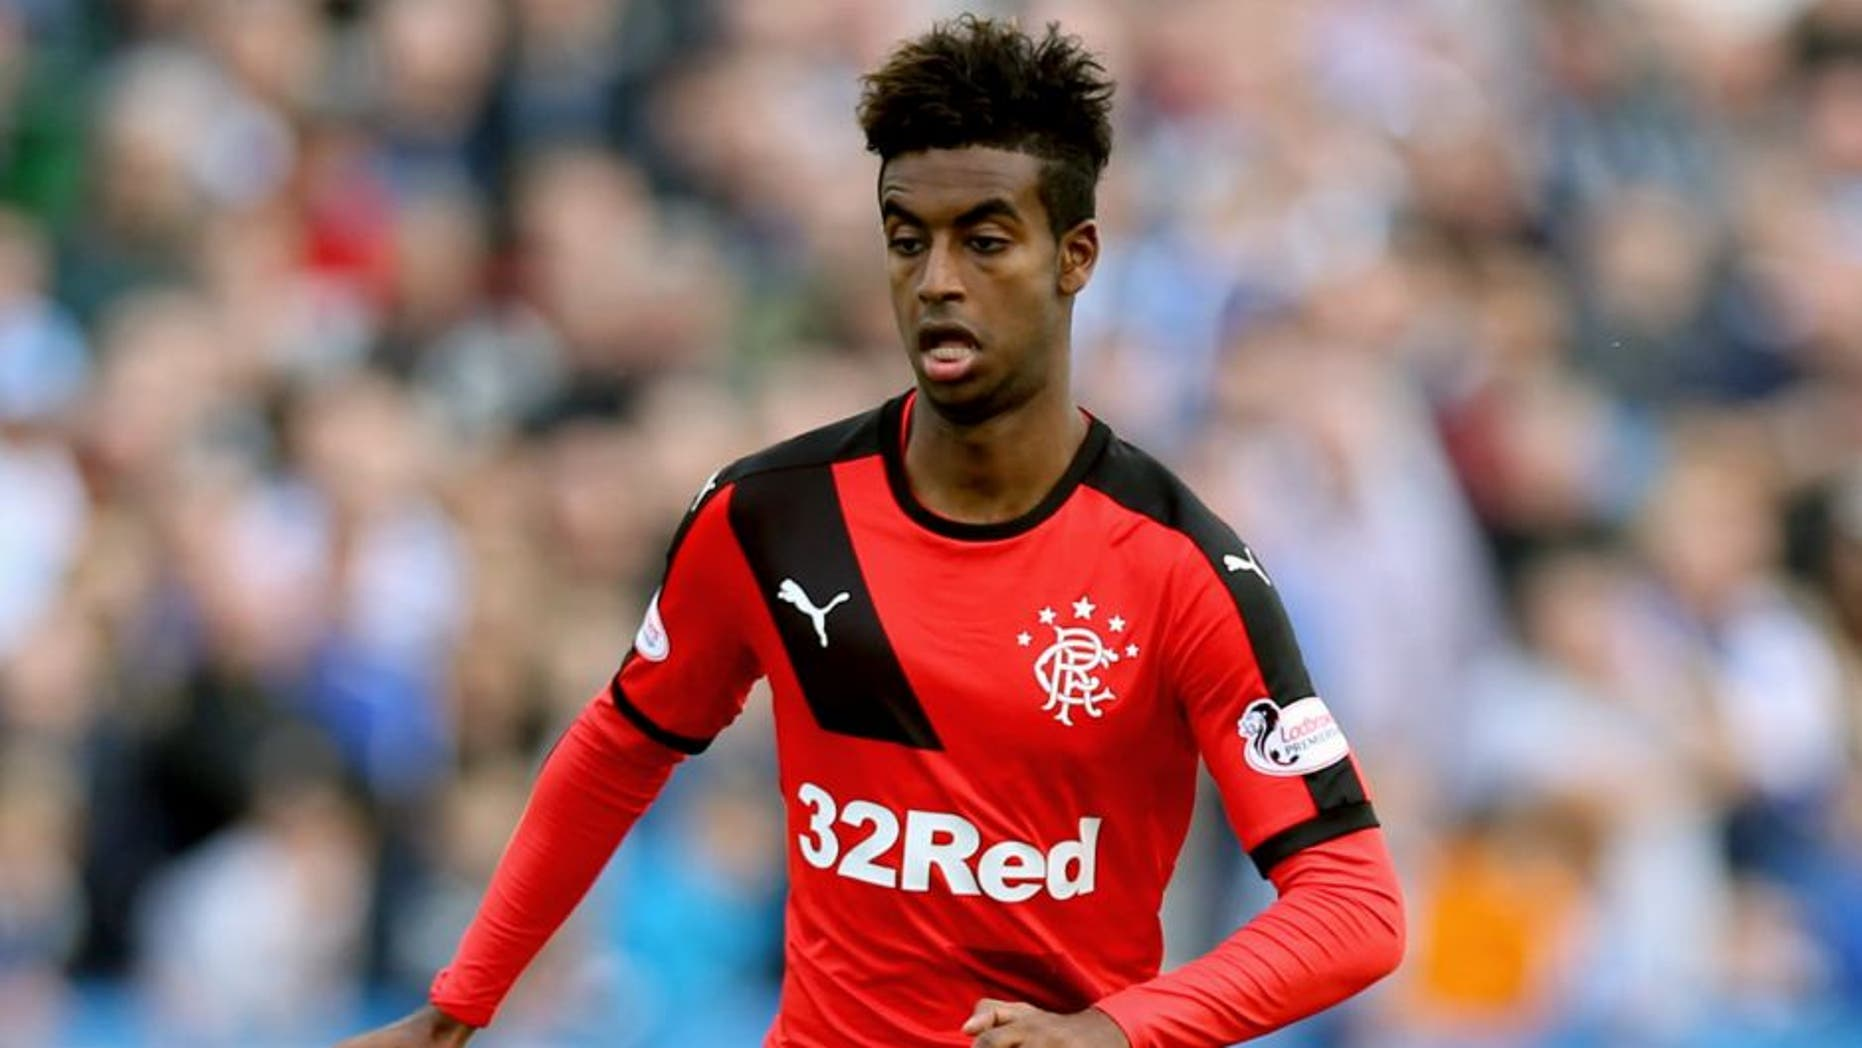 GREENOCK, SCOTLAND - SEPTEMBER 27: Gedion Zelalem of Rangers controls the ball during the Scottish Championships match between Greenock Morton FC and Rangers at Cappielow Park on September 27, 2015 in Greenock, Scotland. (Photo by Ian MacNicol/Getty images)